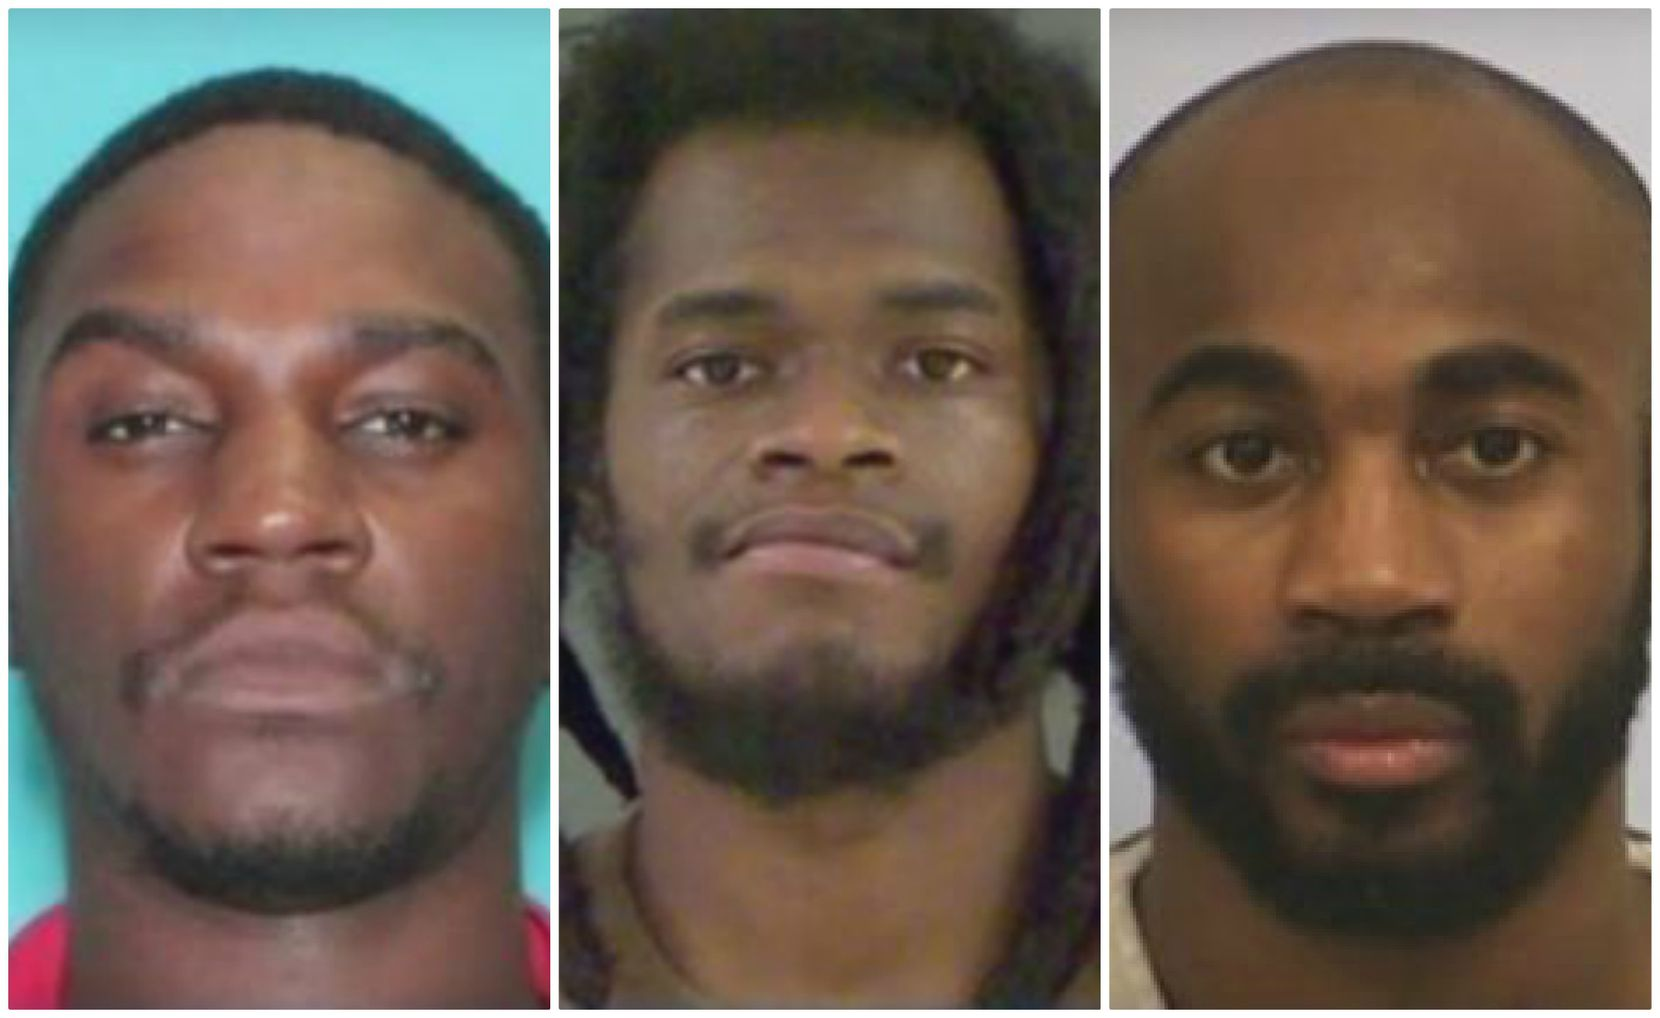 From left: Marcellus Burgin, 29, of Cypress and Rasul Scott, 27, of Louisiana were sentenced Tuesday to 25 years and 17 1/2 years in prison, respectively, and Chimene Onyeri got a life sentence last month.